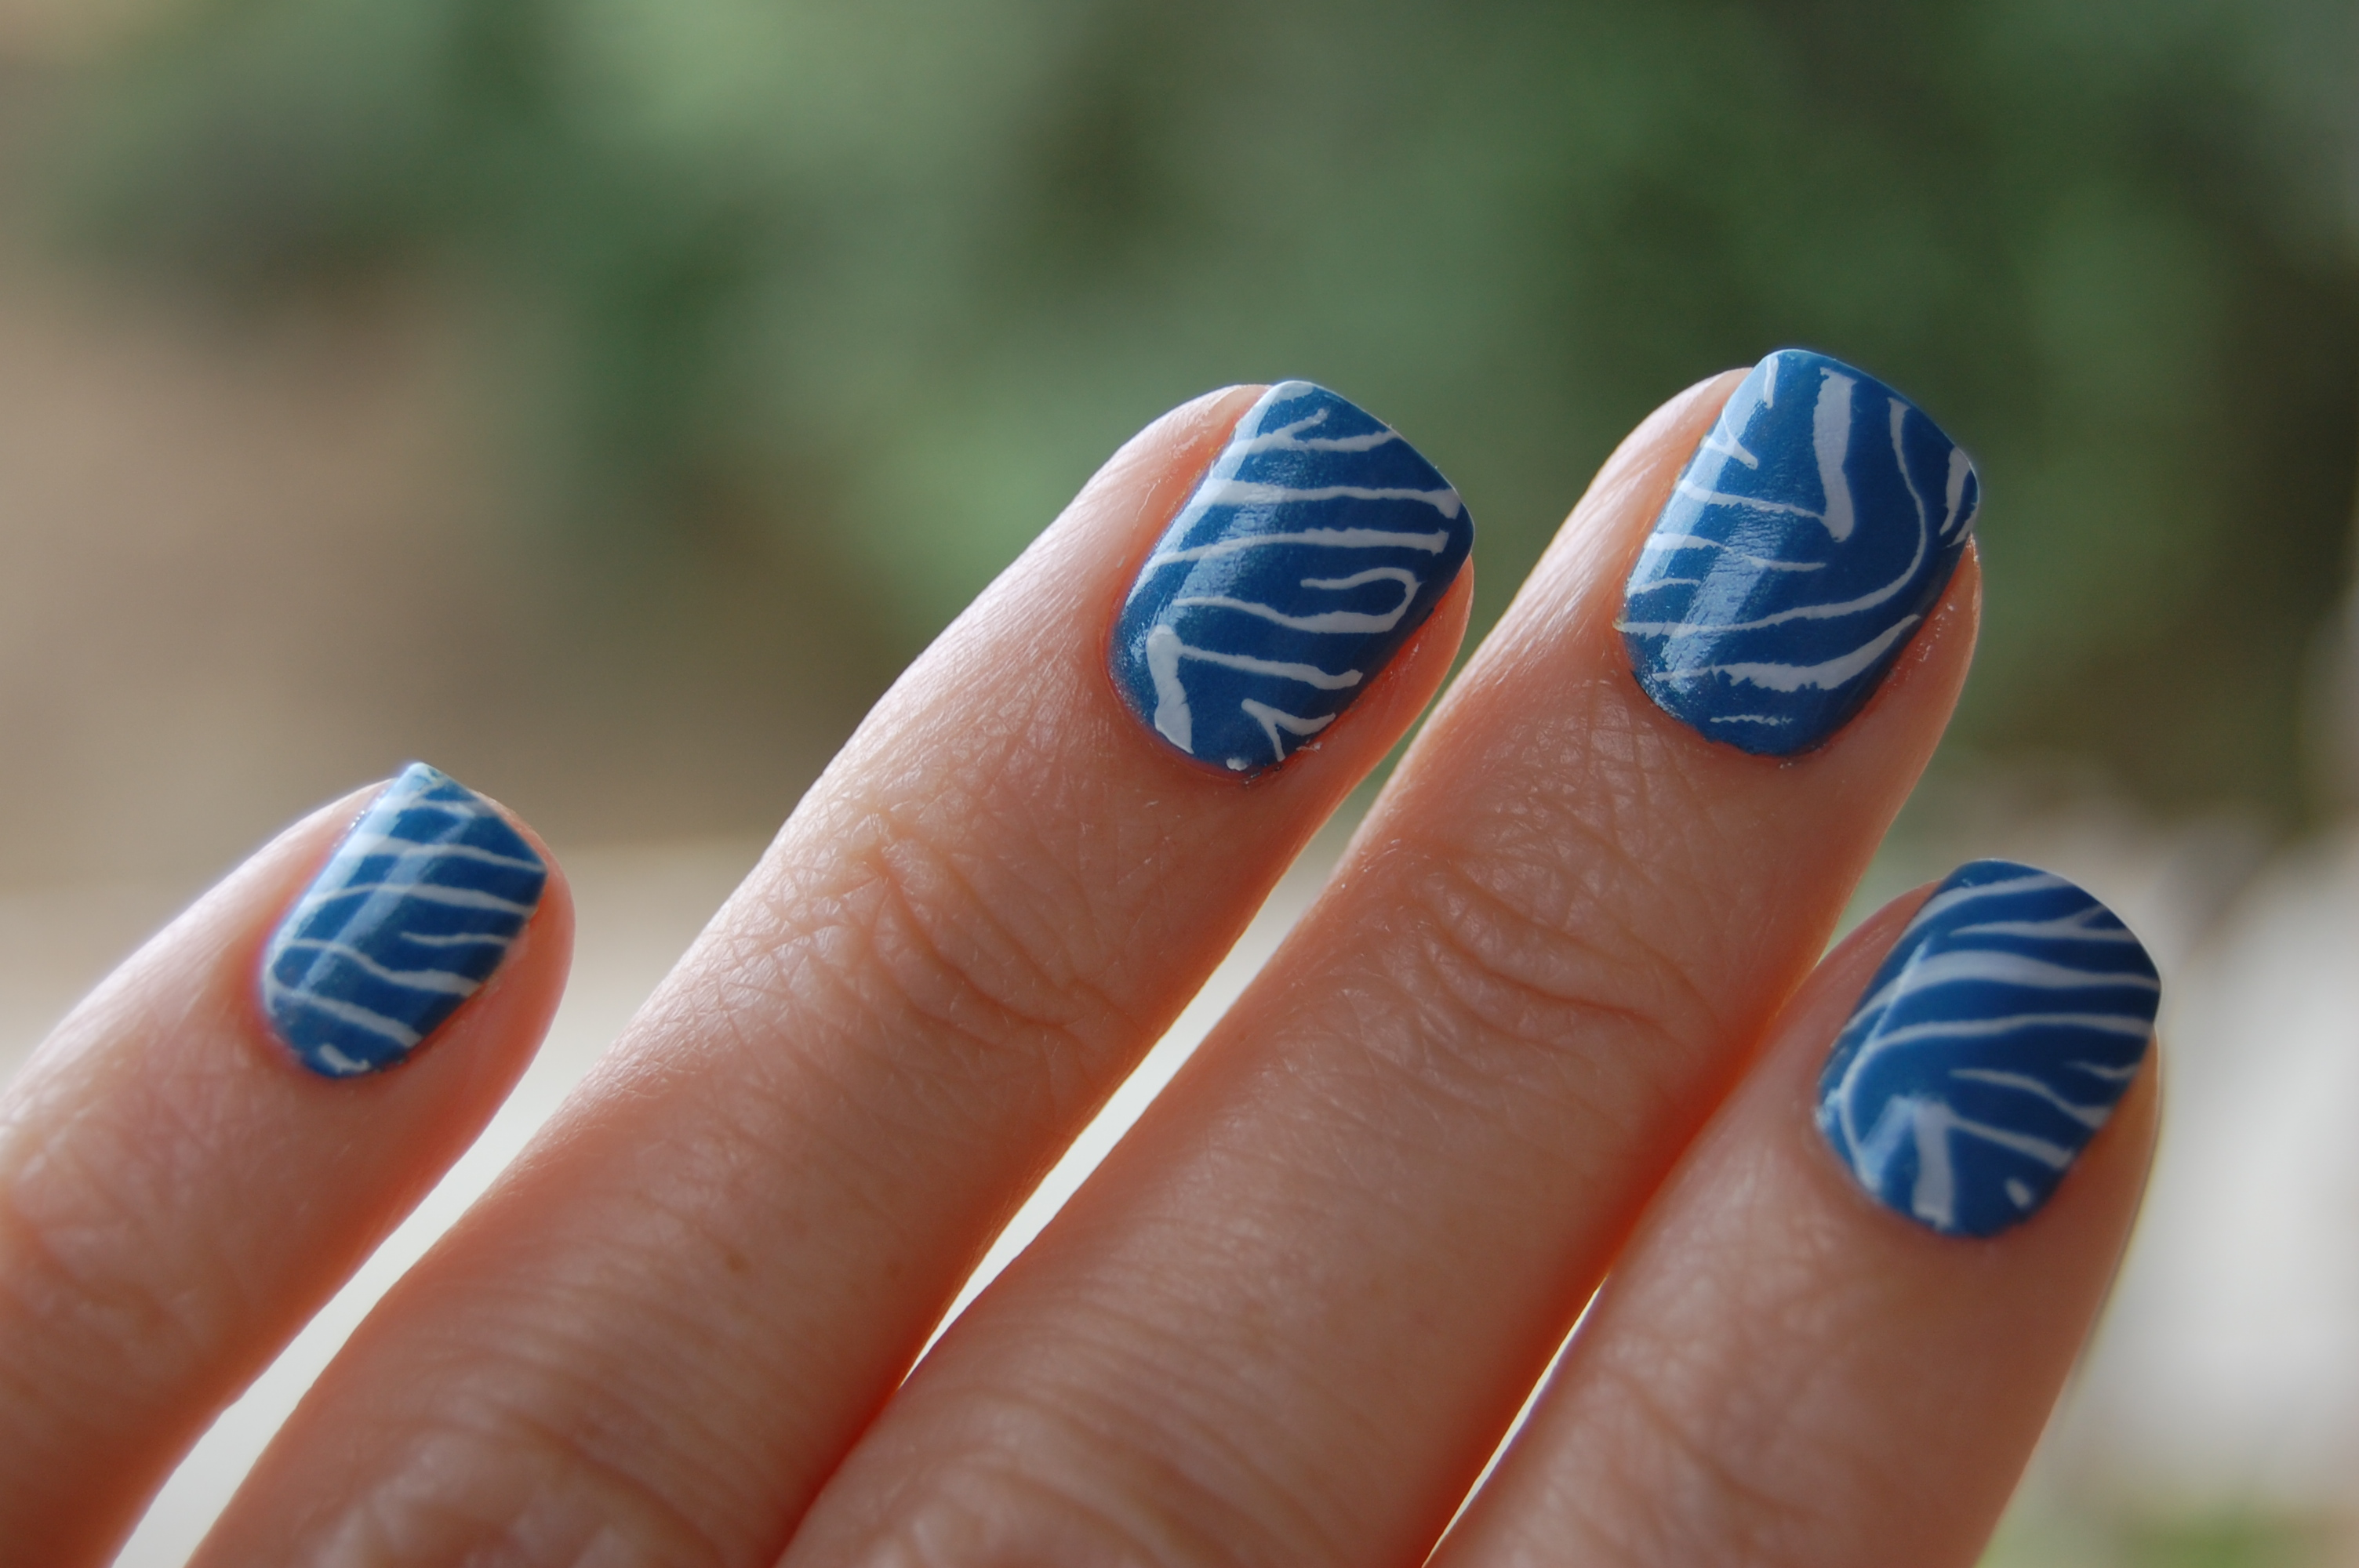 the stylish housewife » Blog Archive show & tell: zebra mani - the